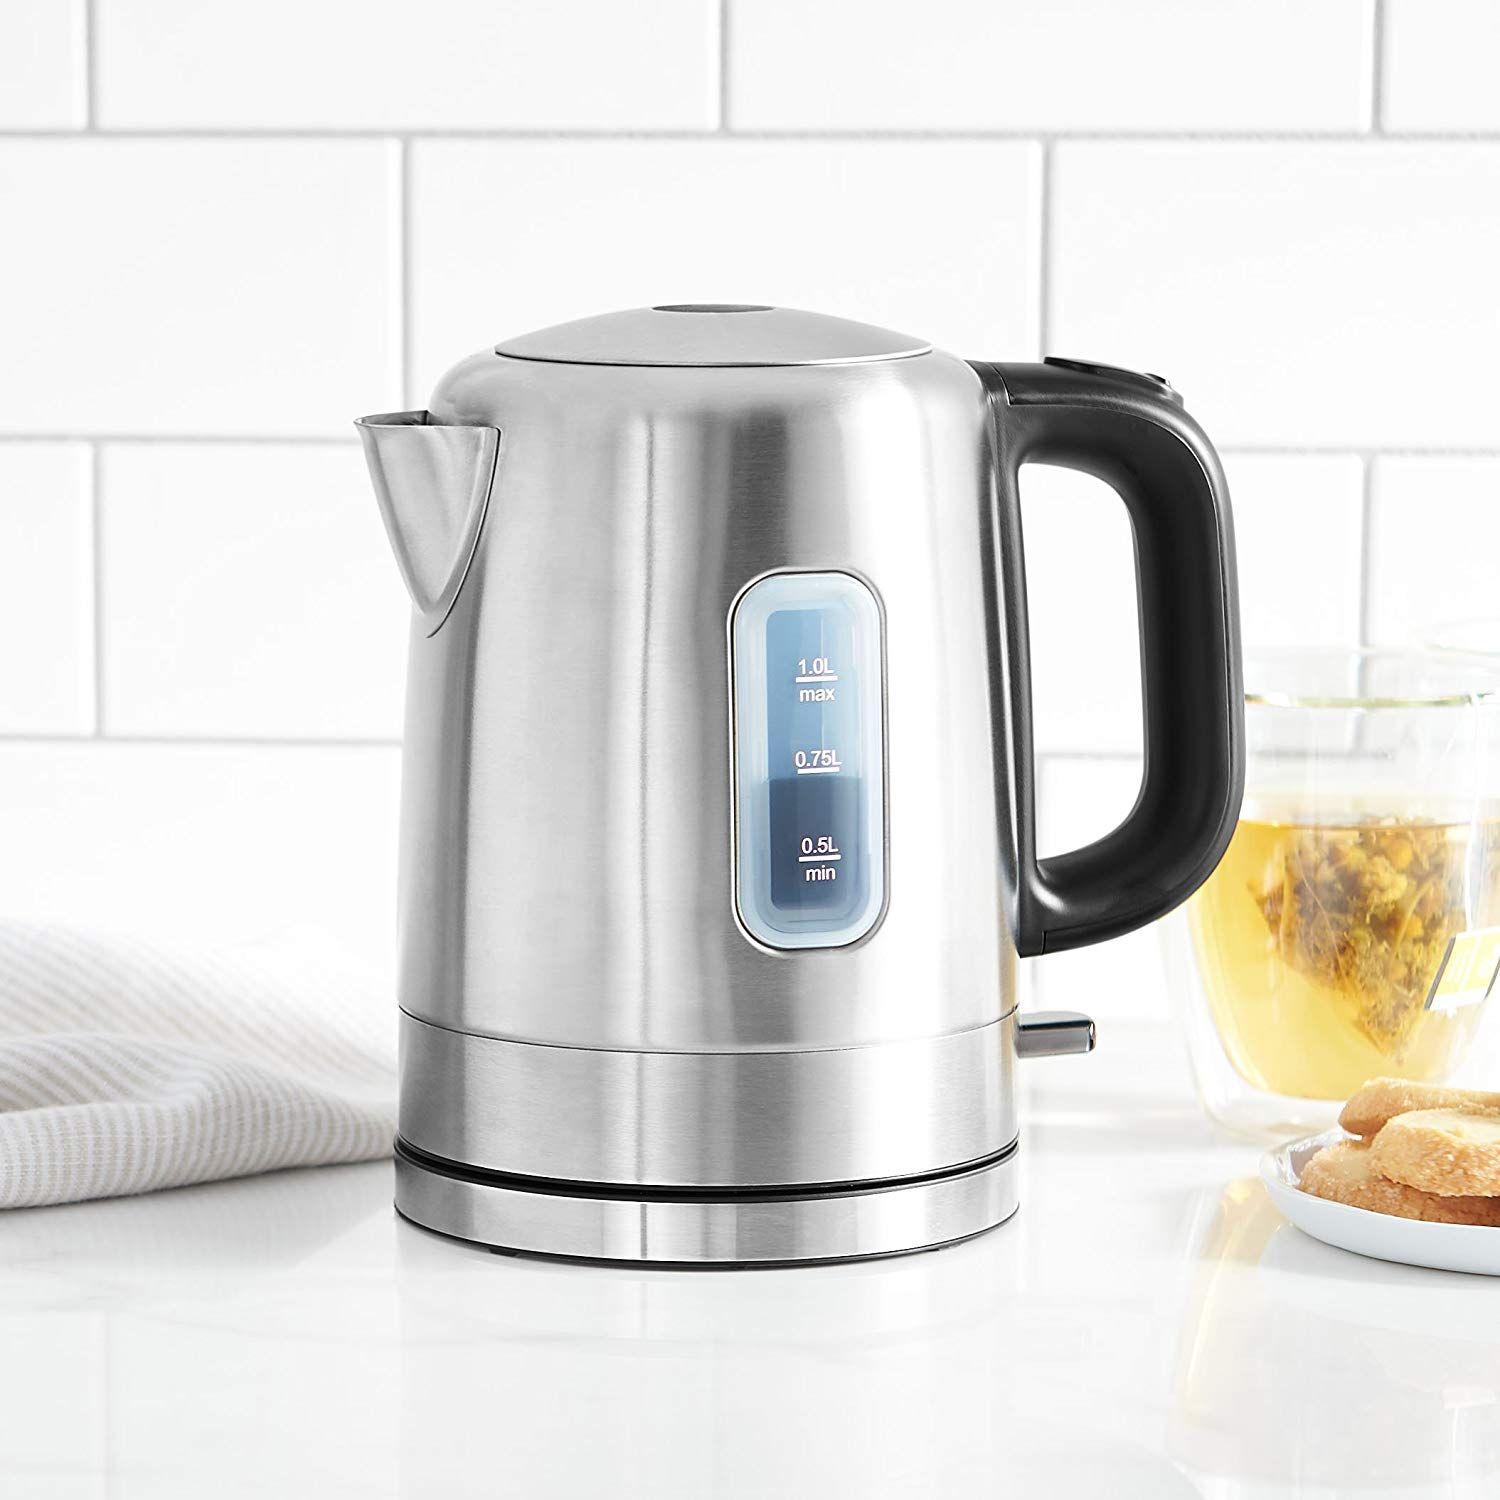 Electric Water Kettle With 1 0 Liter Capacity And 1500 Watts Of Power For Fast Results 120v 60hz Cordless D Electric Kettle Electric Tea Kettle Water Kettle